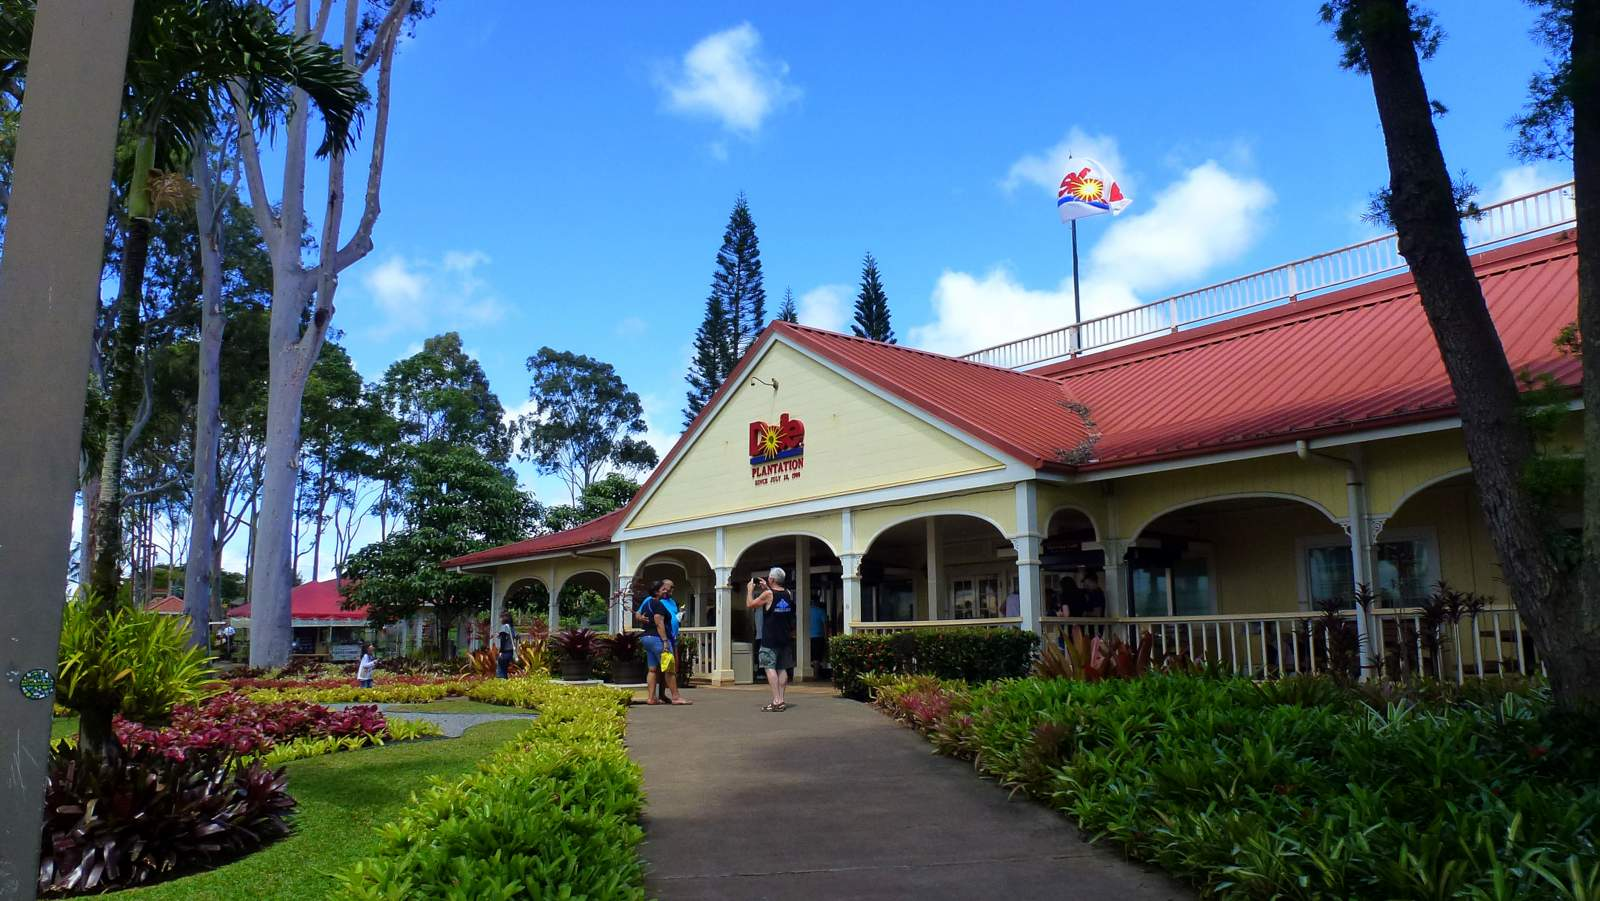 The Dole Plantation, one of the many things you can see driving on Oahu.